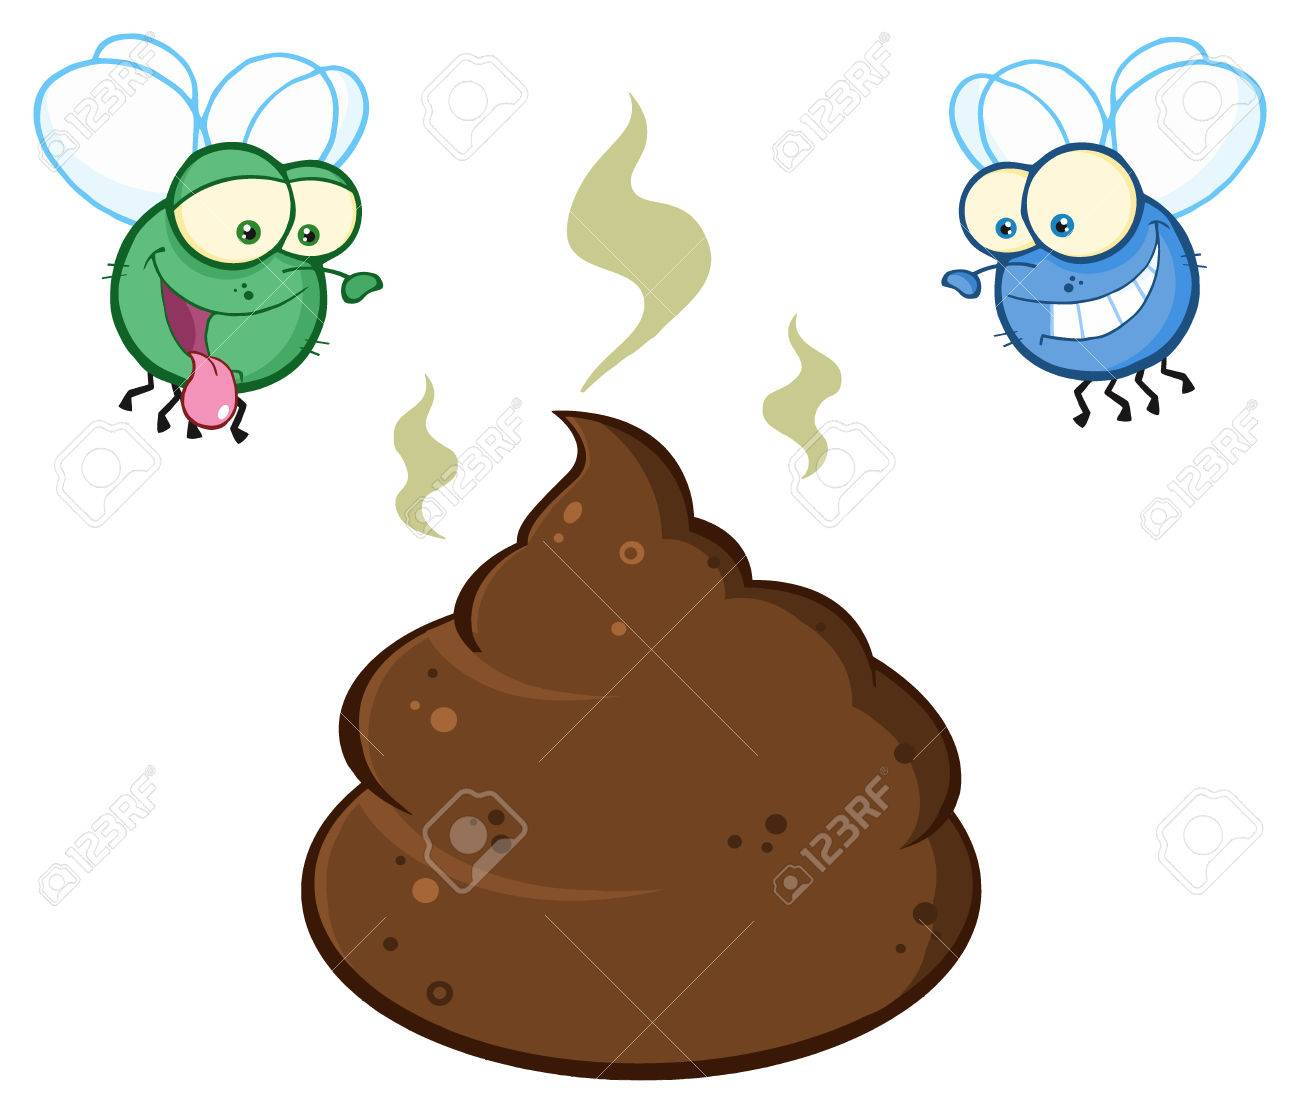 Two Flies Hovering Over Pile Of Smelly Poop Cartoon Characters